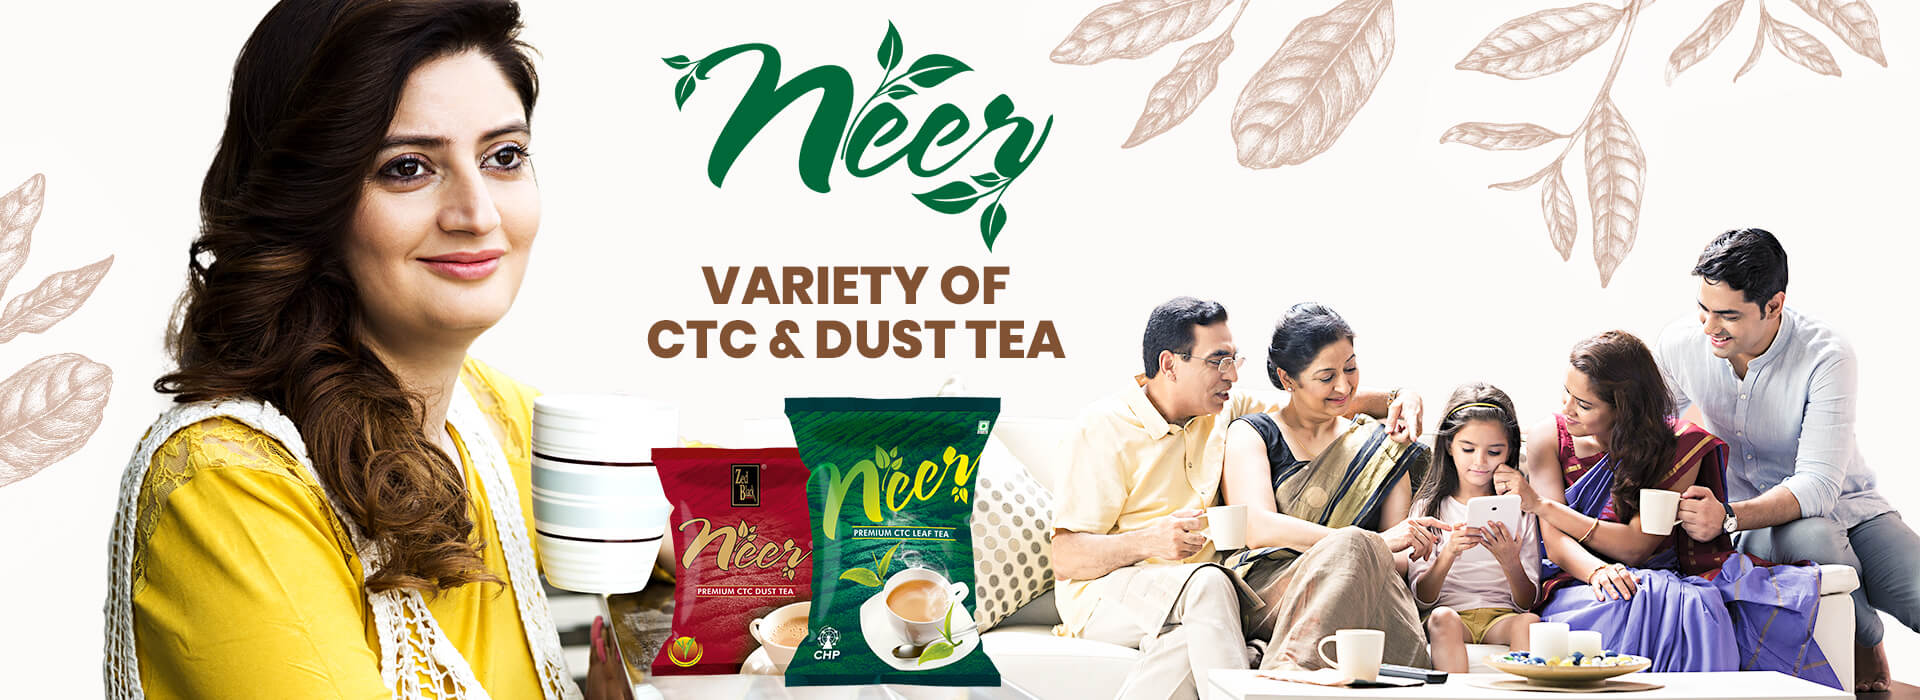 neer variety of ctc and dust tea